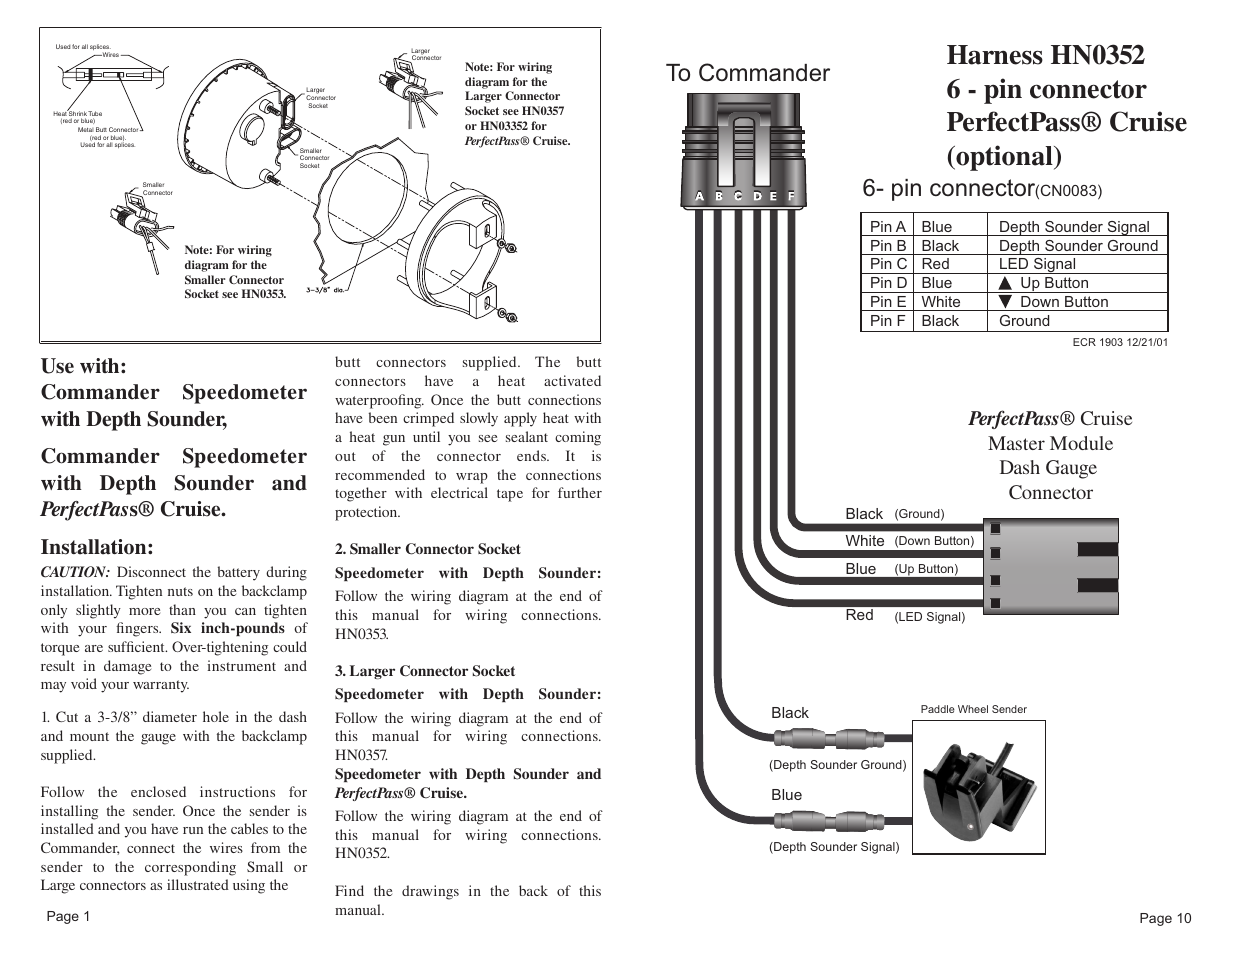 faria instruments commander page3 pin connector faria instruments commander user manual page 3 16 faria gauges wiring diagram at cos-gaming.co